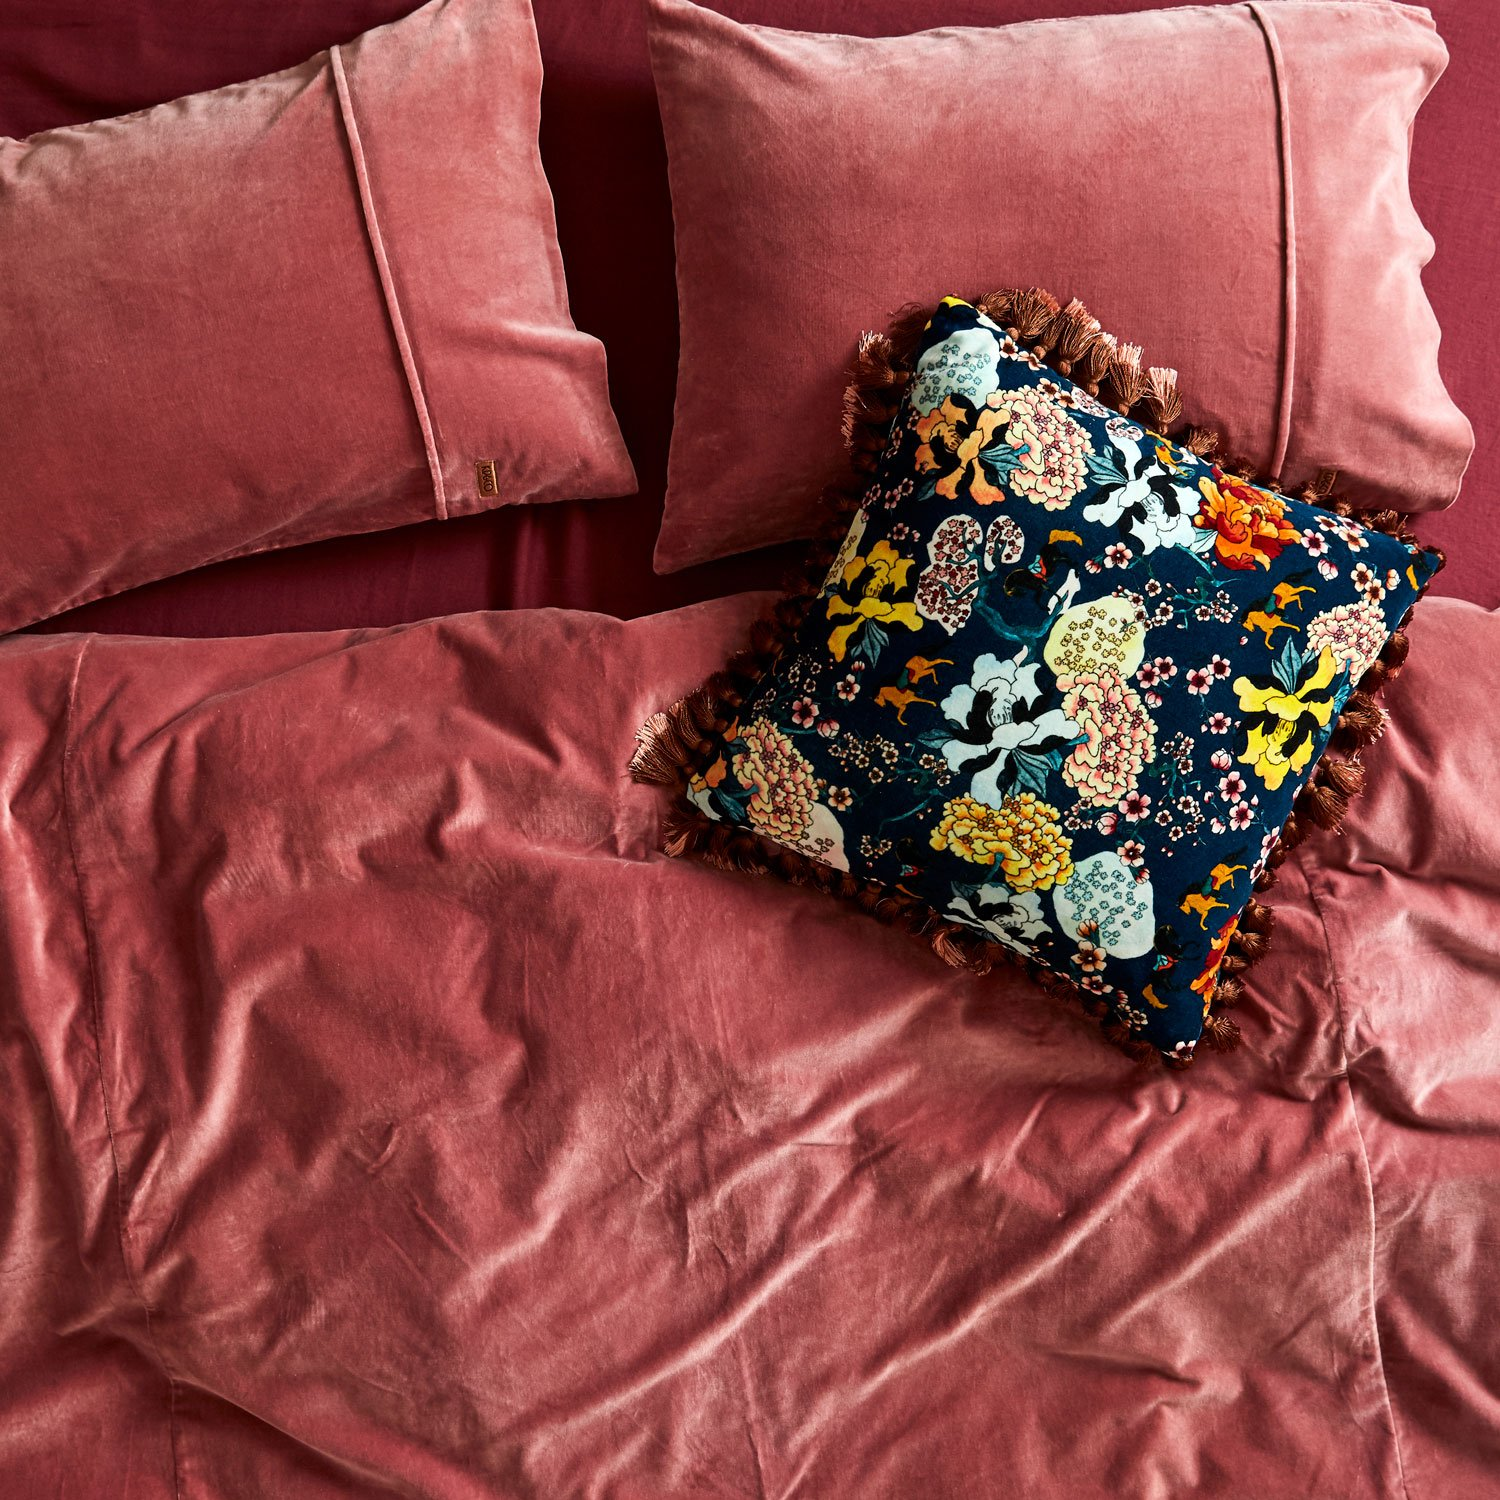 Tasseled floral pillow from Kip & Co.